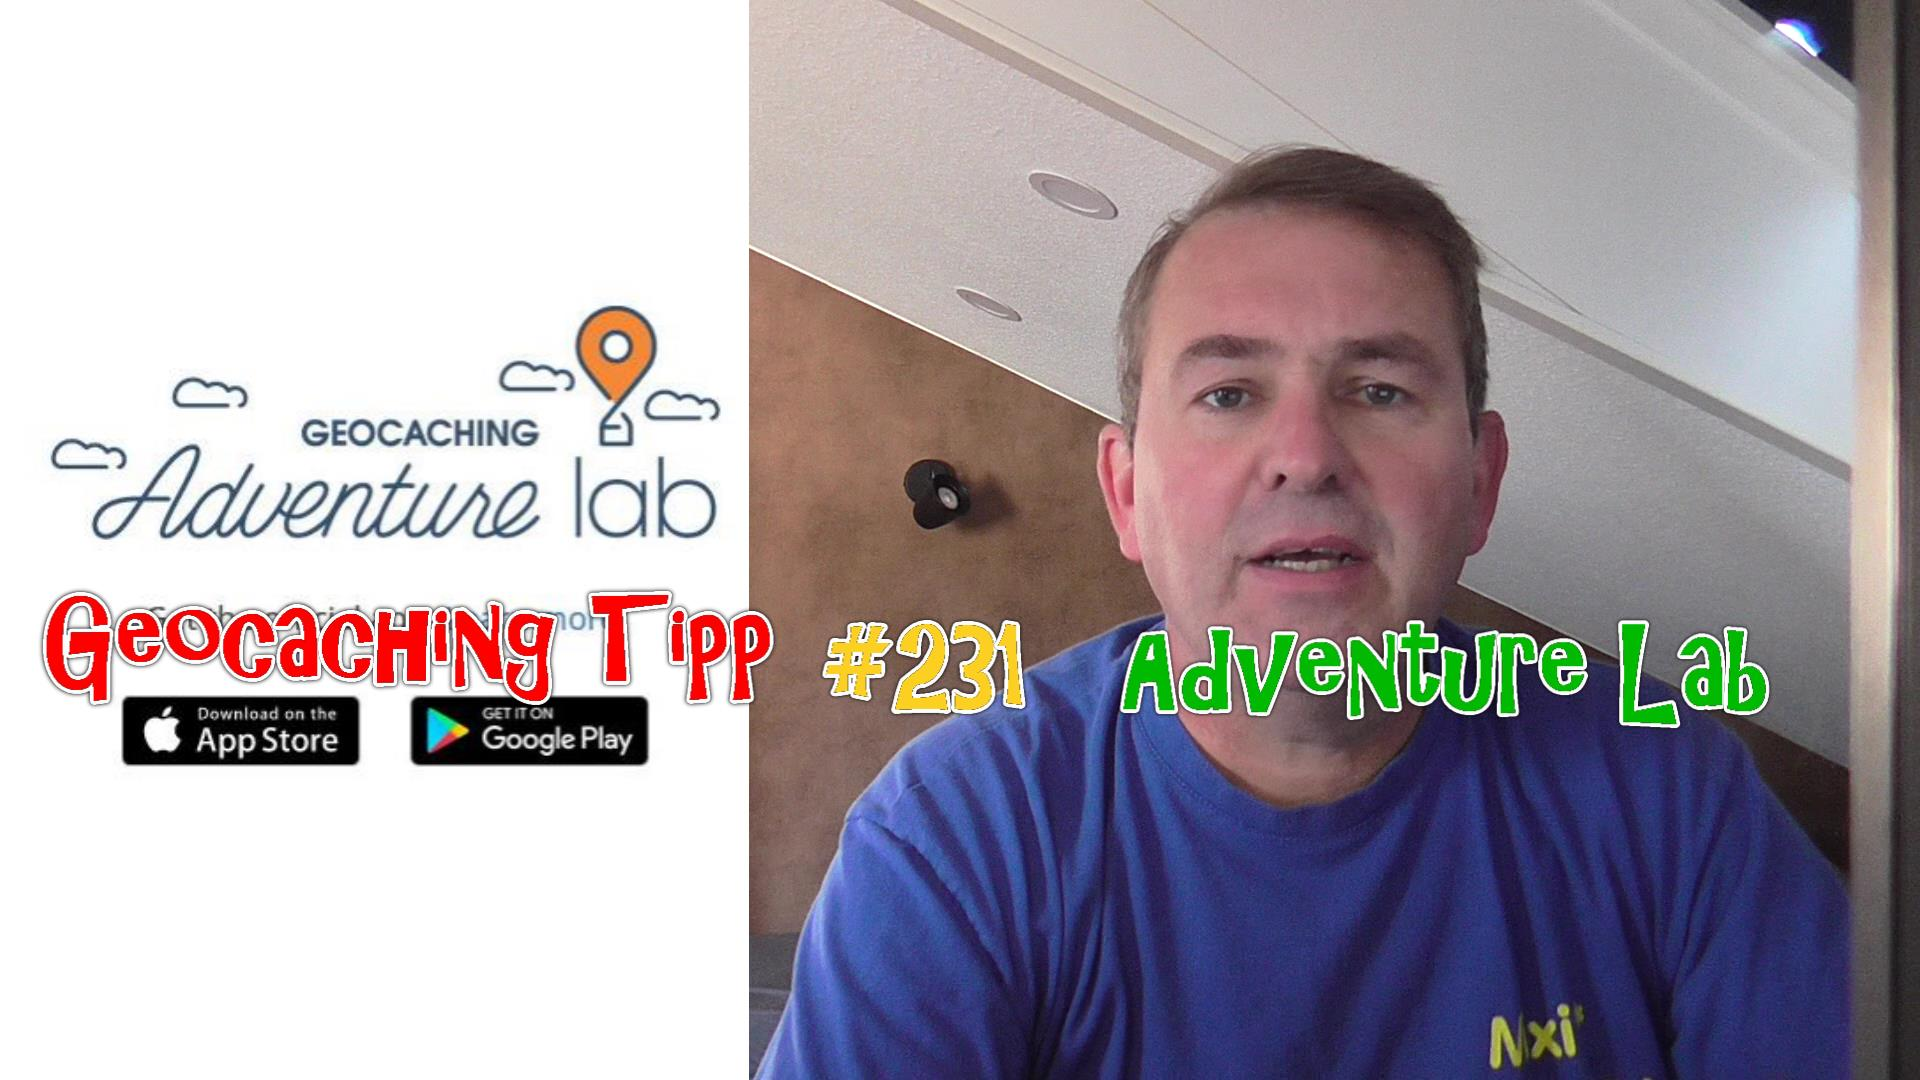 Geocaching Tipp 231 - Adventure Lab